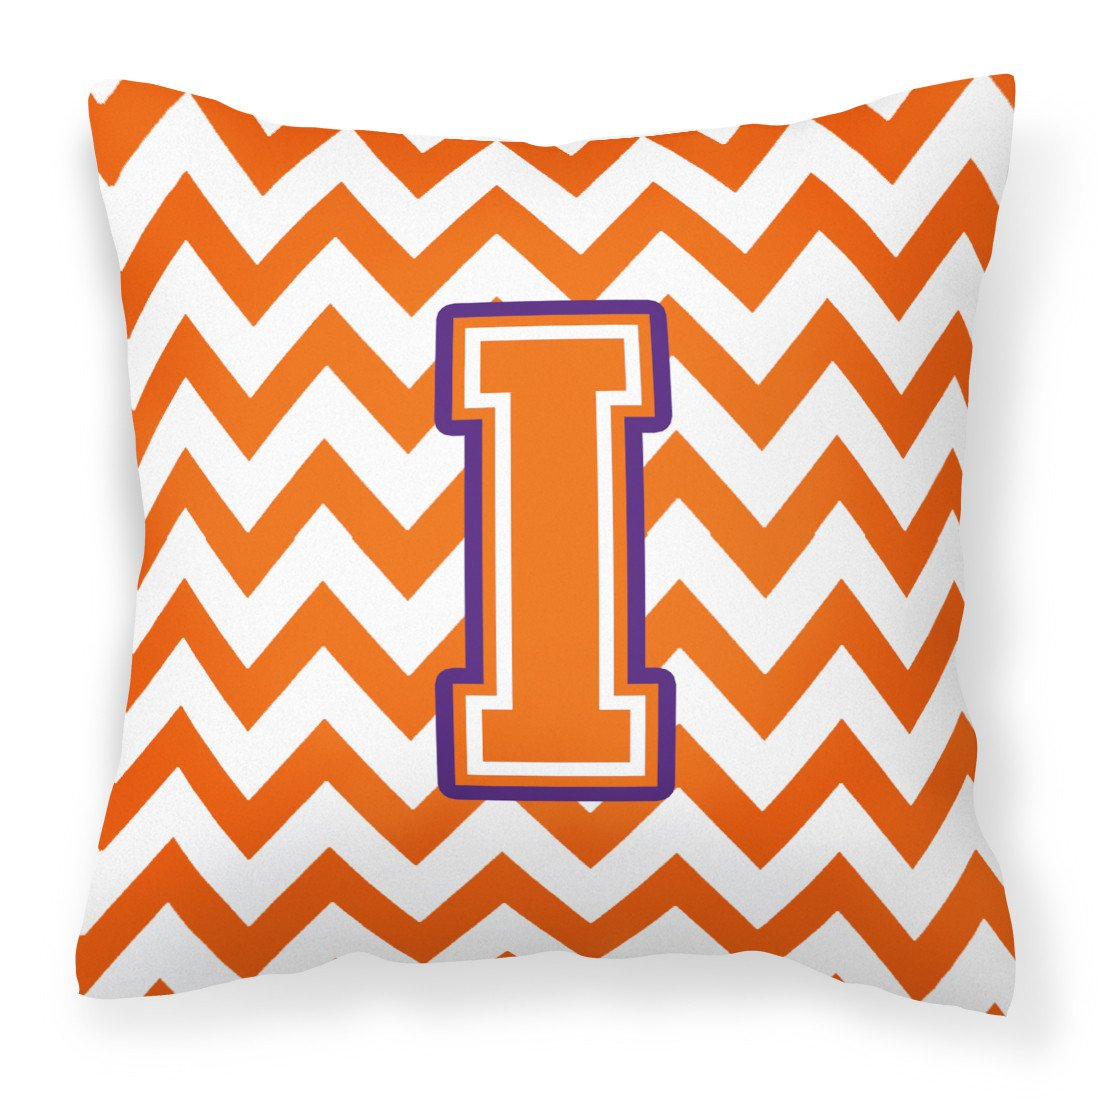 Letter I Chevron Orange and Regalia Fabric Decorative Pillow CJ1062-IPW1414 by Caroline's Treasures